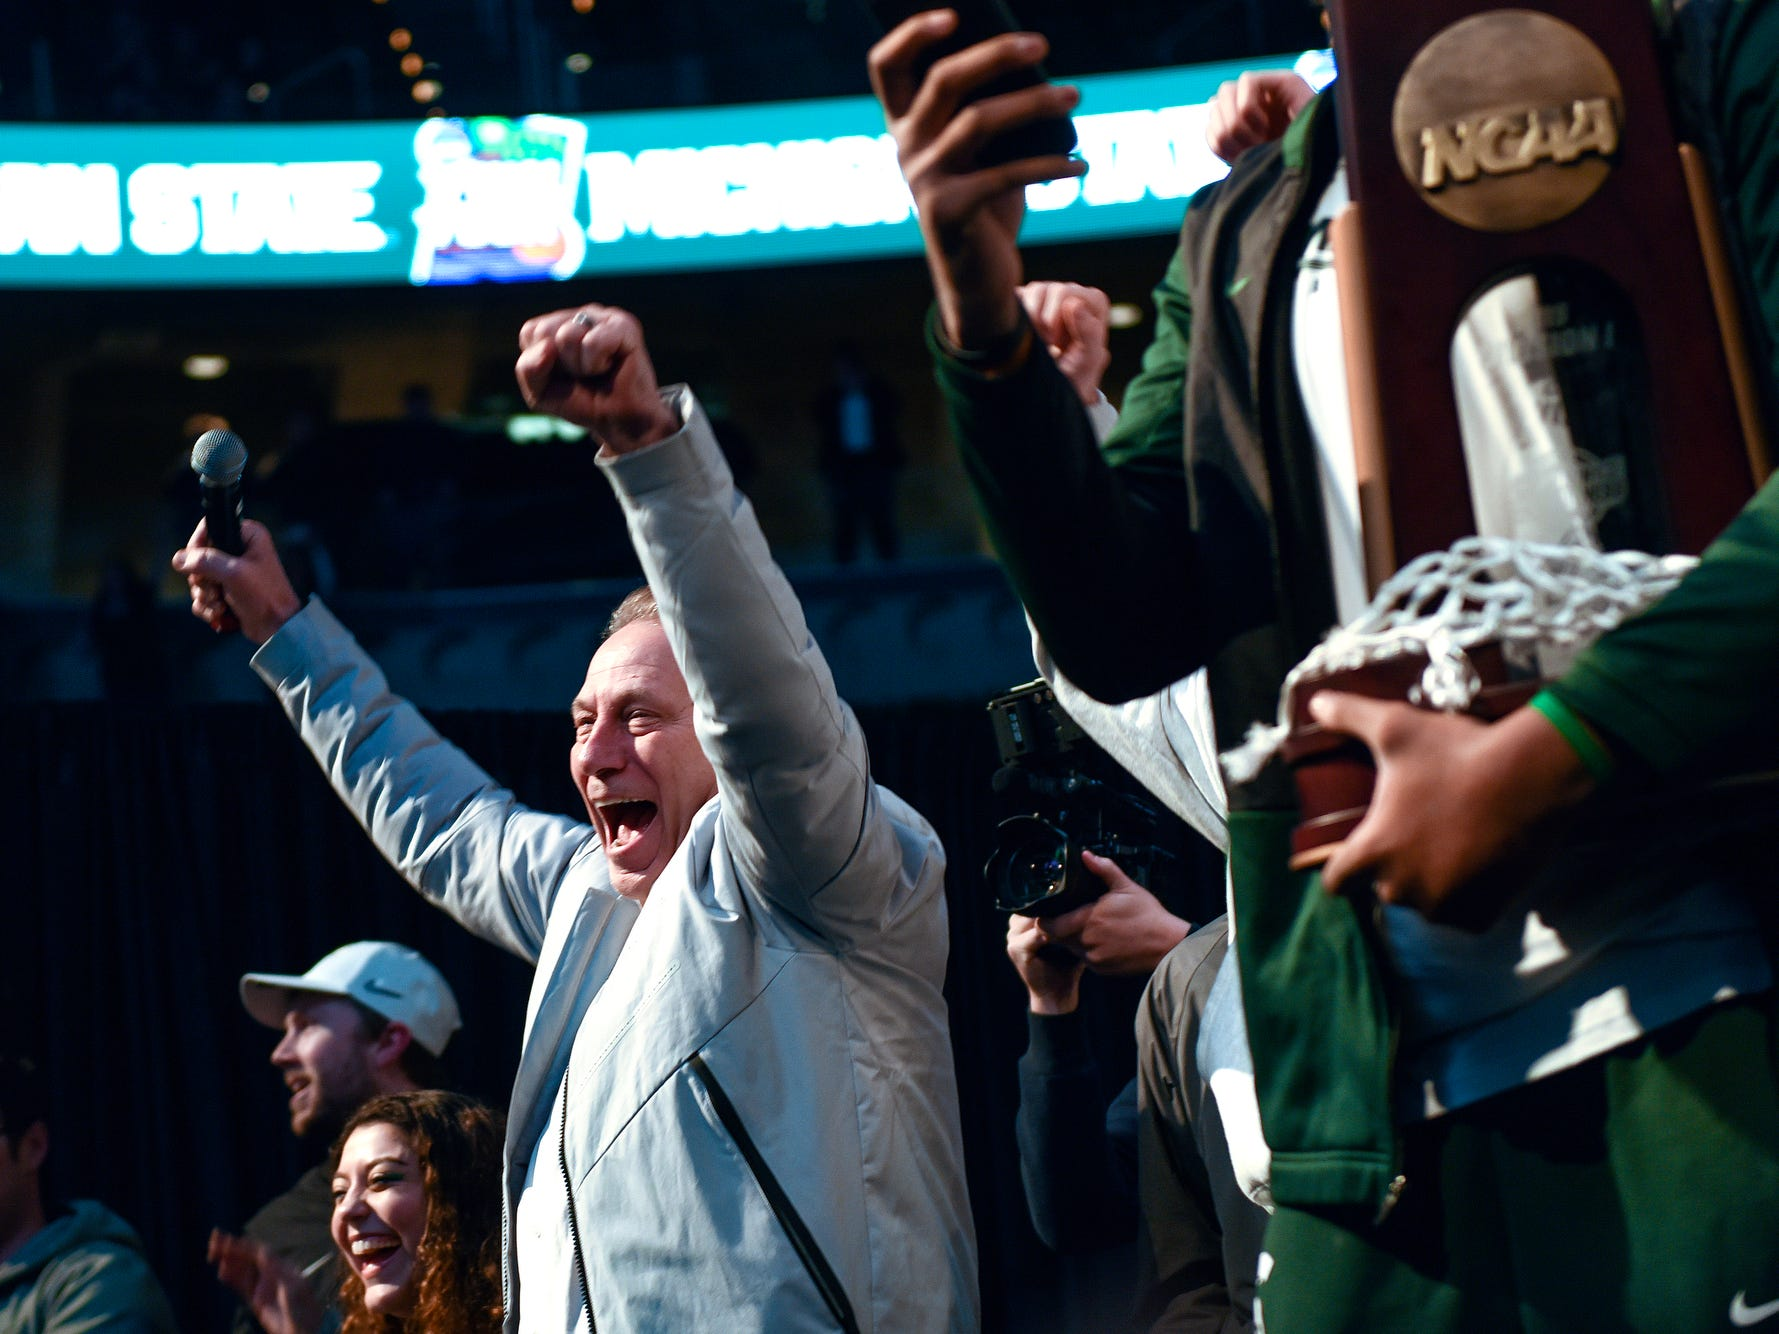 Michigan State head coach Tom Izzo celebrates with fans during a rally after MSU's victory over Duke on Sunday, March 31, 2019, at the Breslin Center in East Lansing. The Spartans beat Duke 68-67 to reach the Final Four.